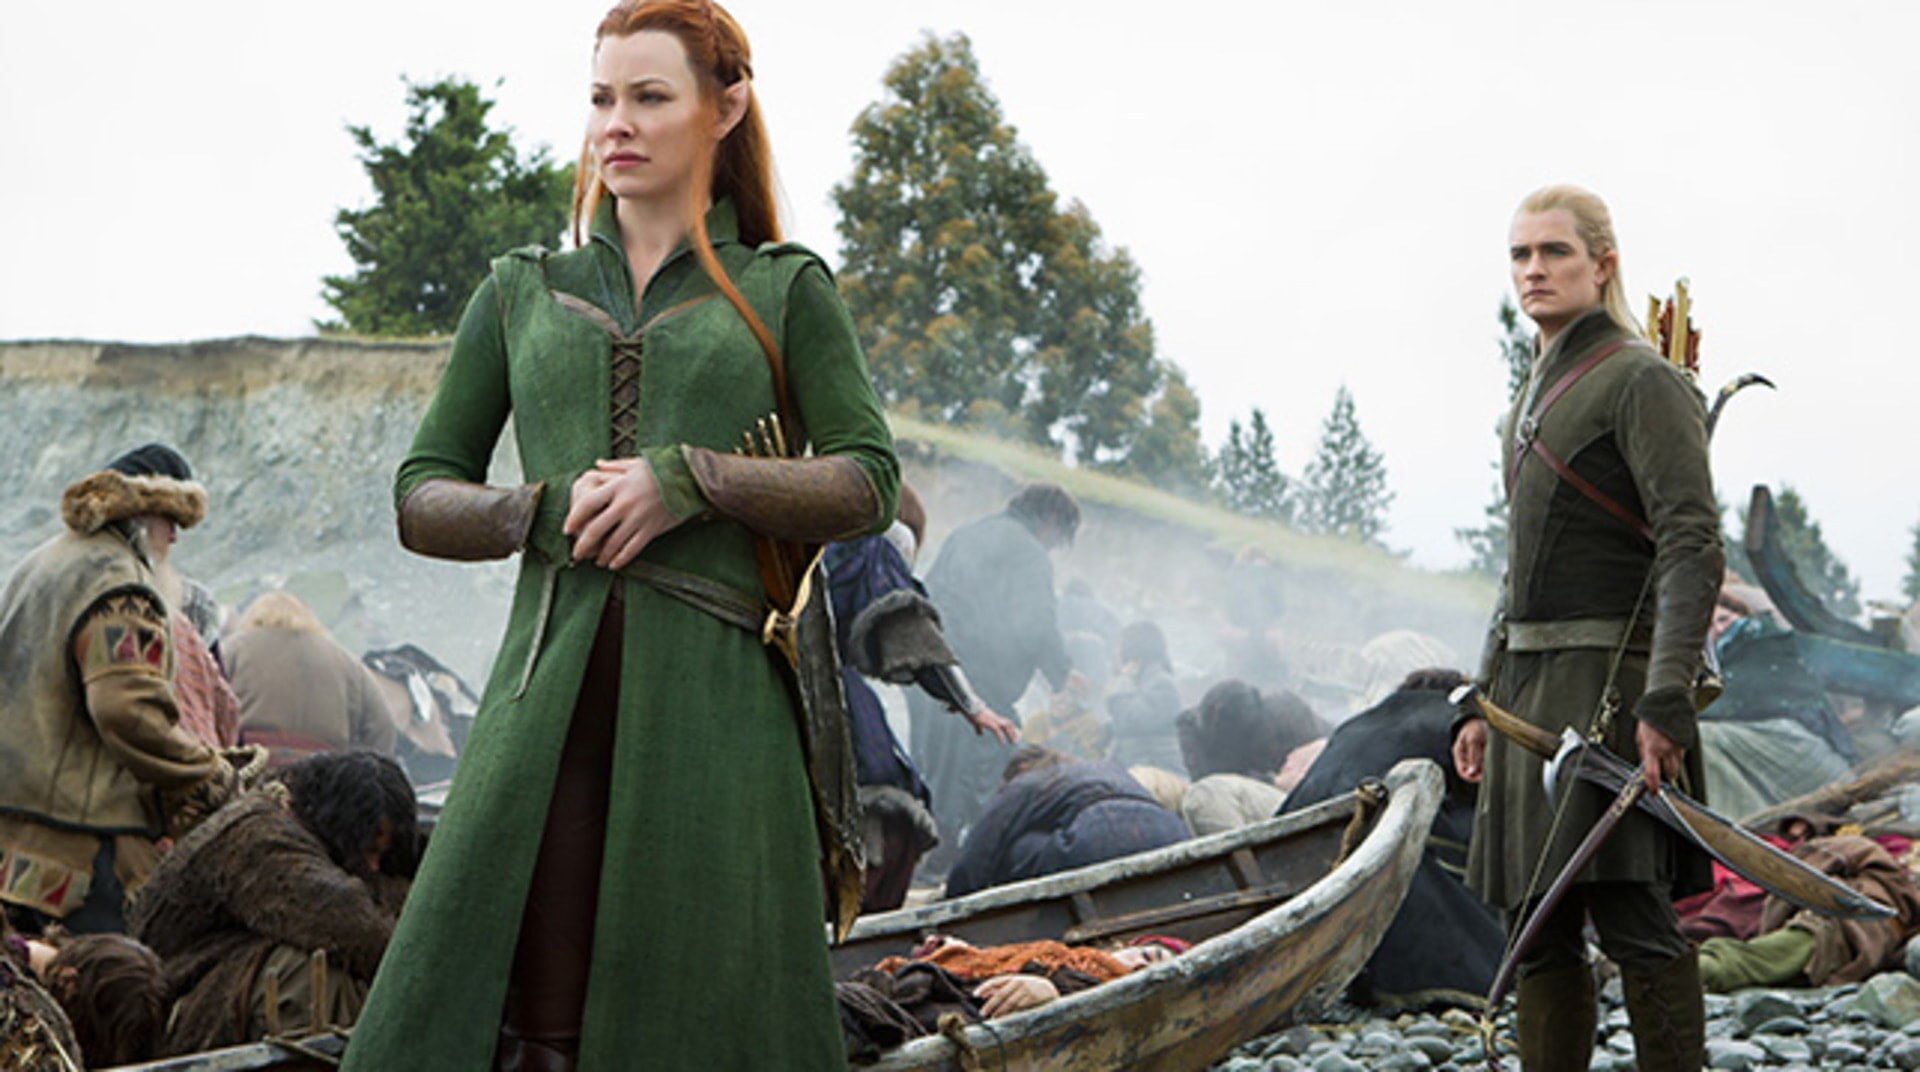 The Hobbit: The Battle of the Five Armies - Image 2